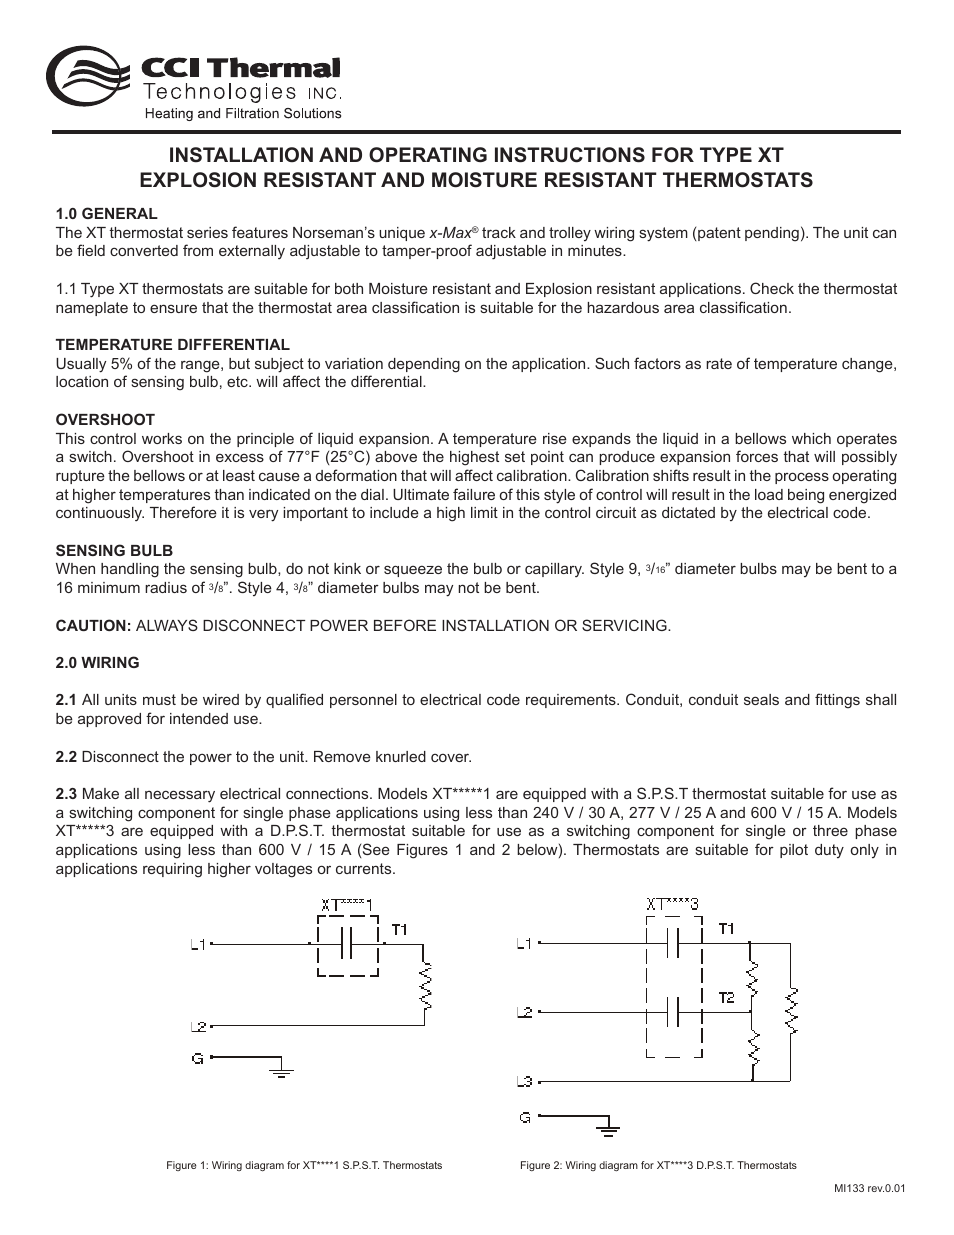 Cci Thermal Technologies Norseman Xtk 12 Thermostat Installation Dpst Wiring Diagram Kit Process Heating Applications User Manual 3 Pages Also For Xtb